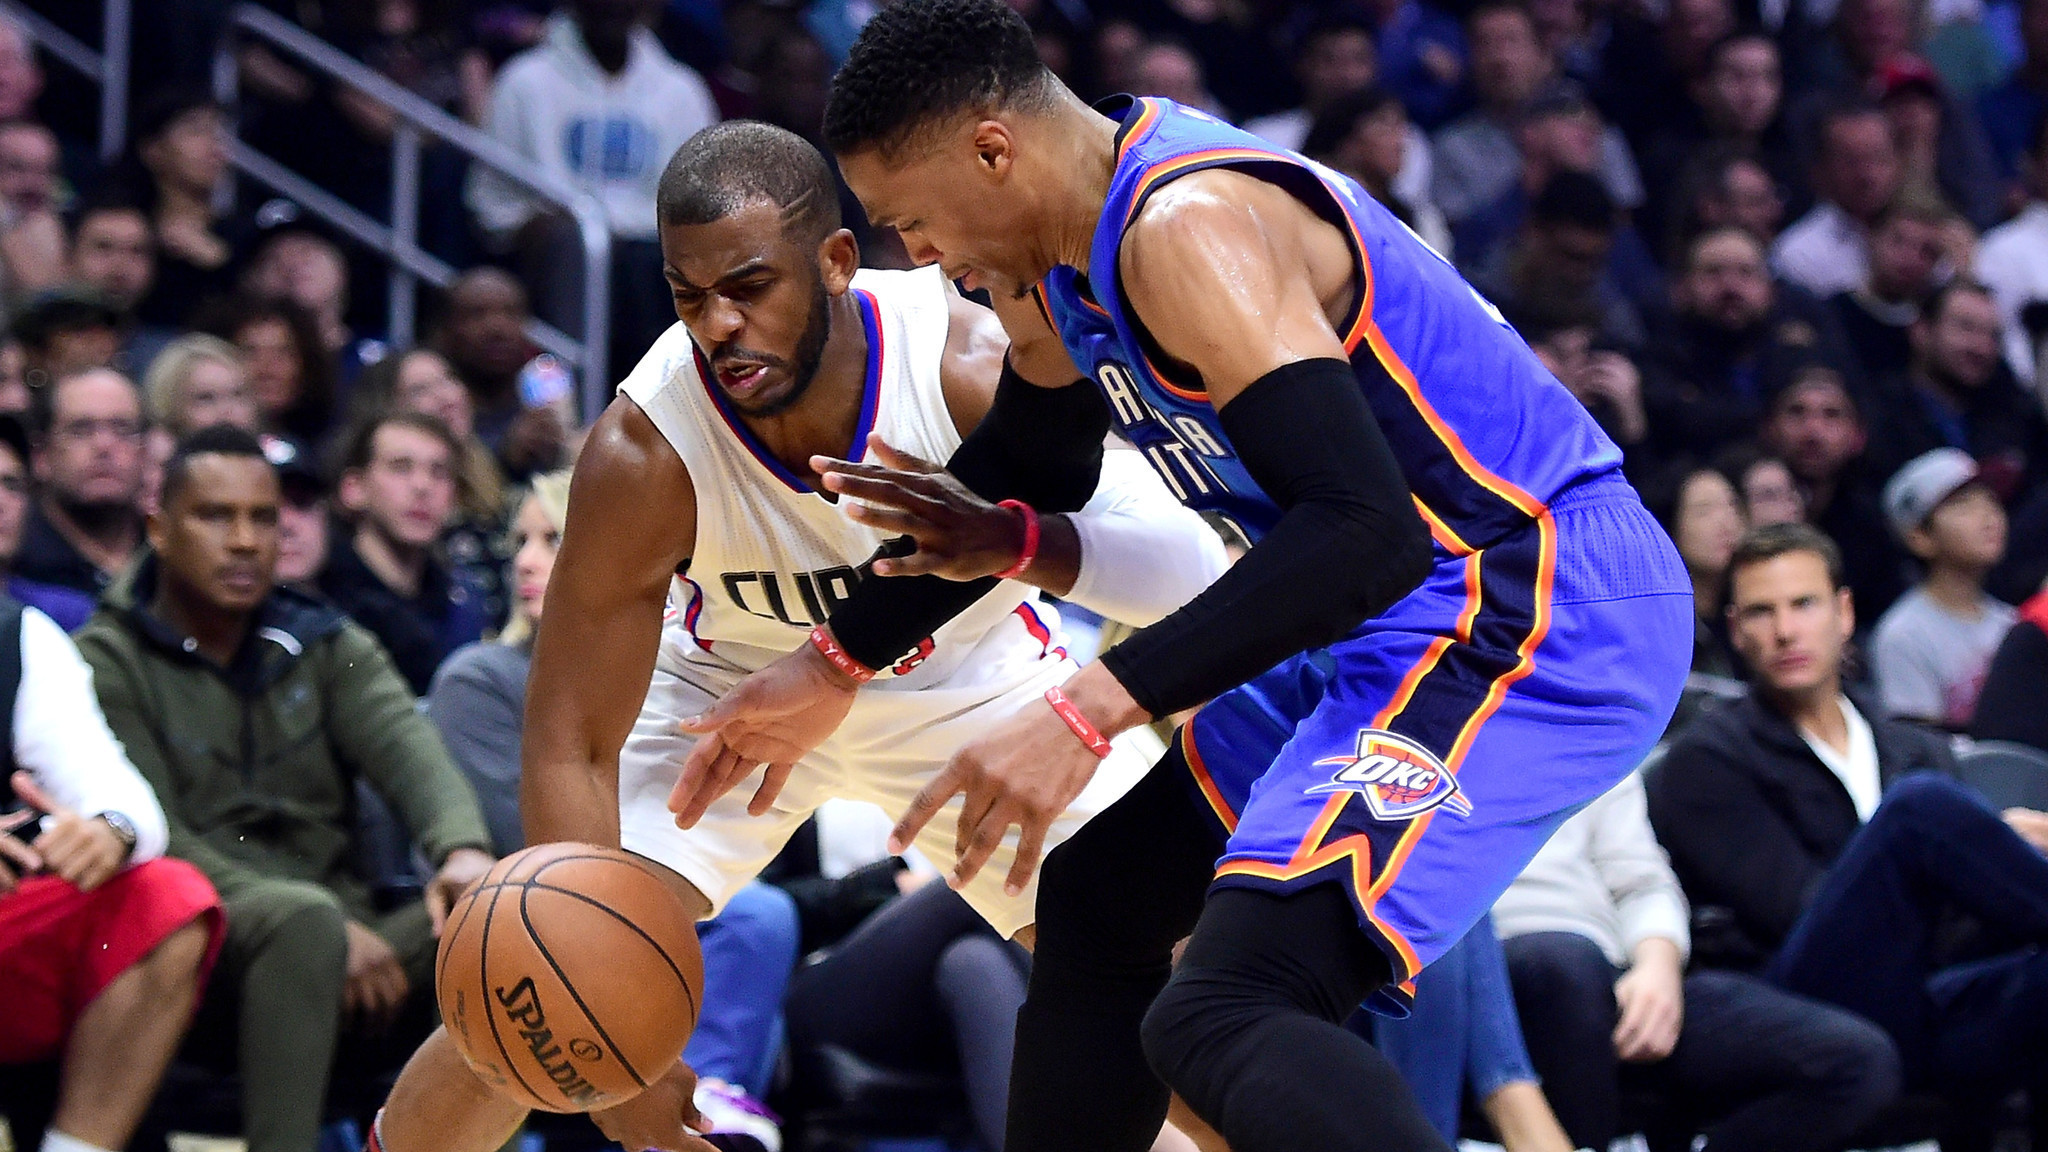 La-sp-clippers-thunder-20170116